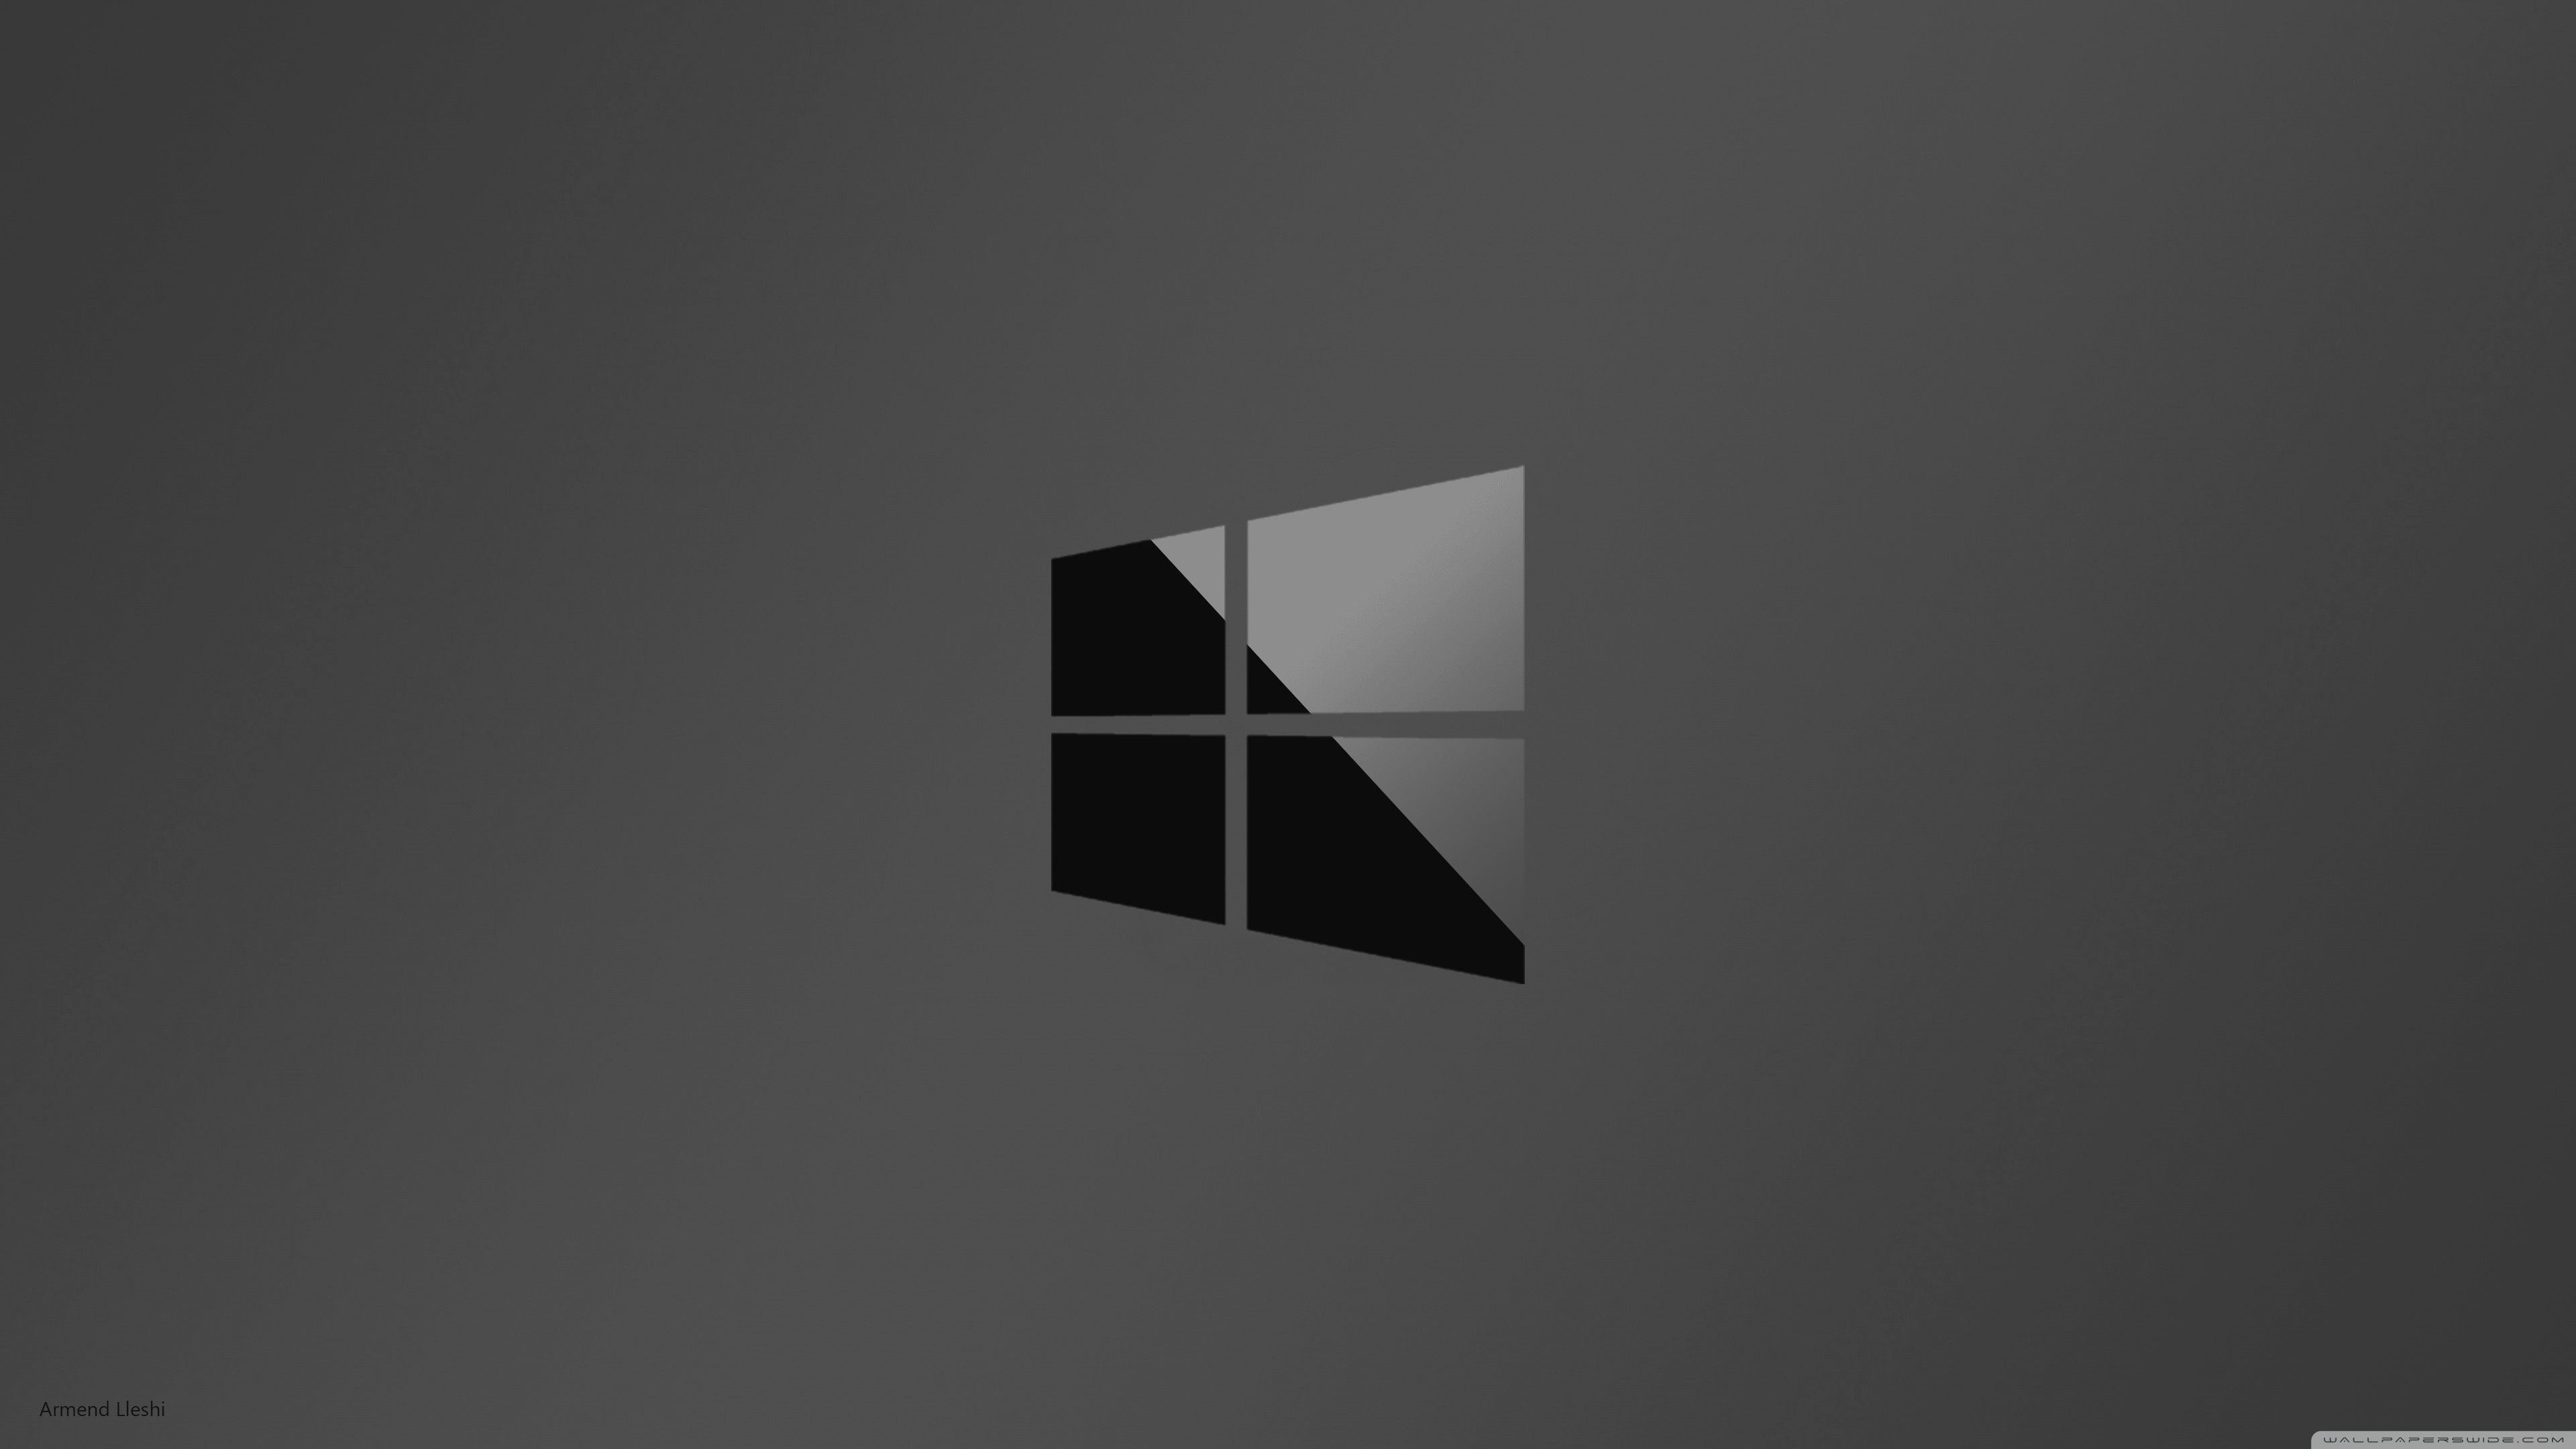 Wallpaper Wide Windows 10 In 2020 Wallpaper Windows 10 Windows Wallpaper Desktop Wallpaper Black